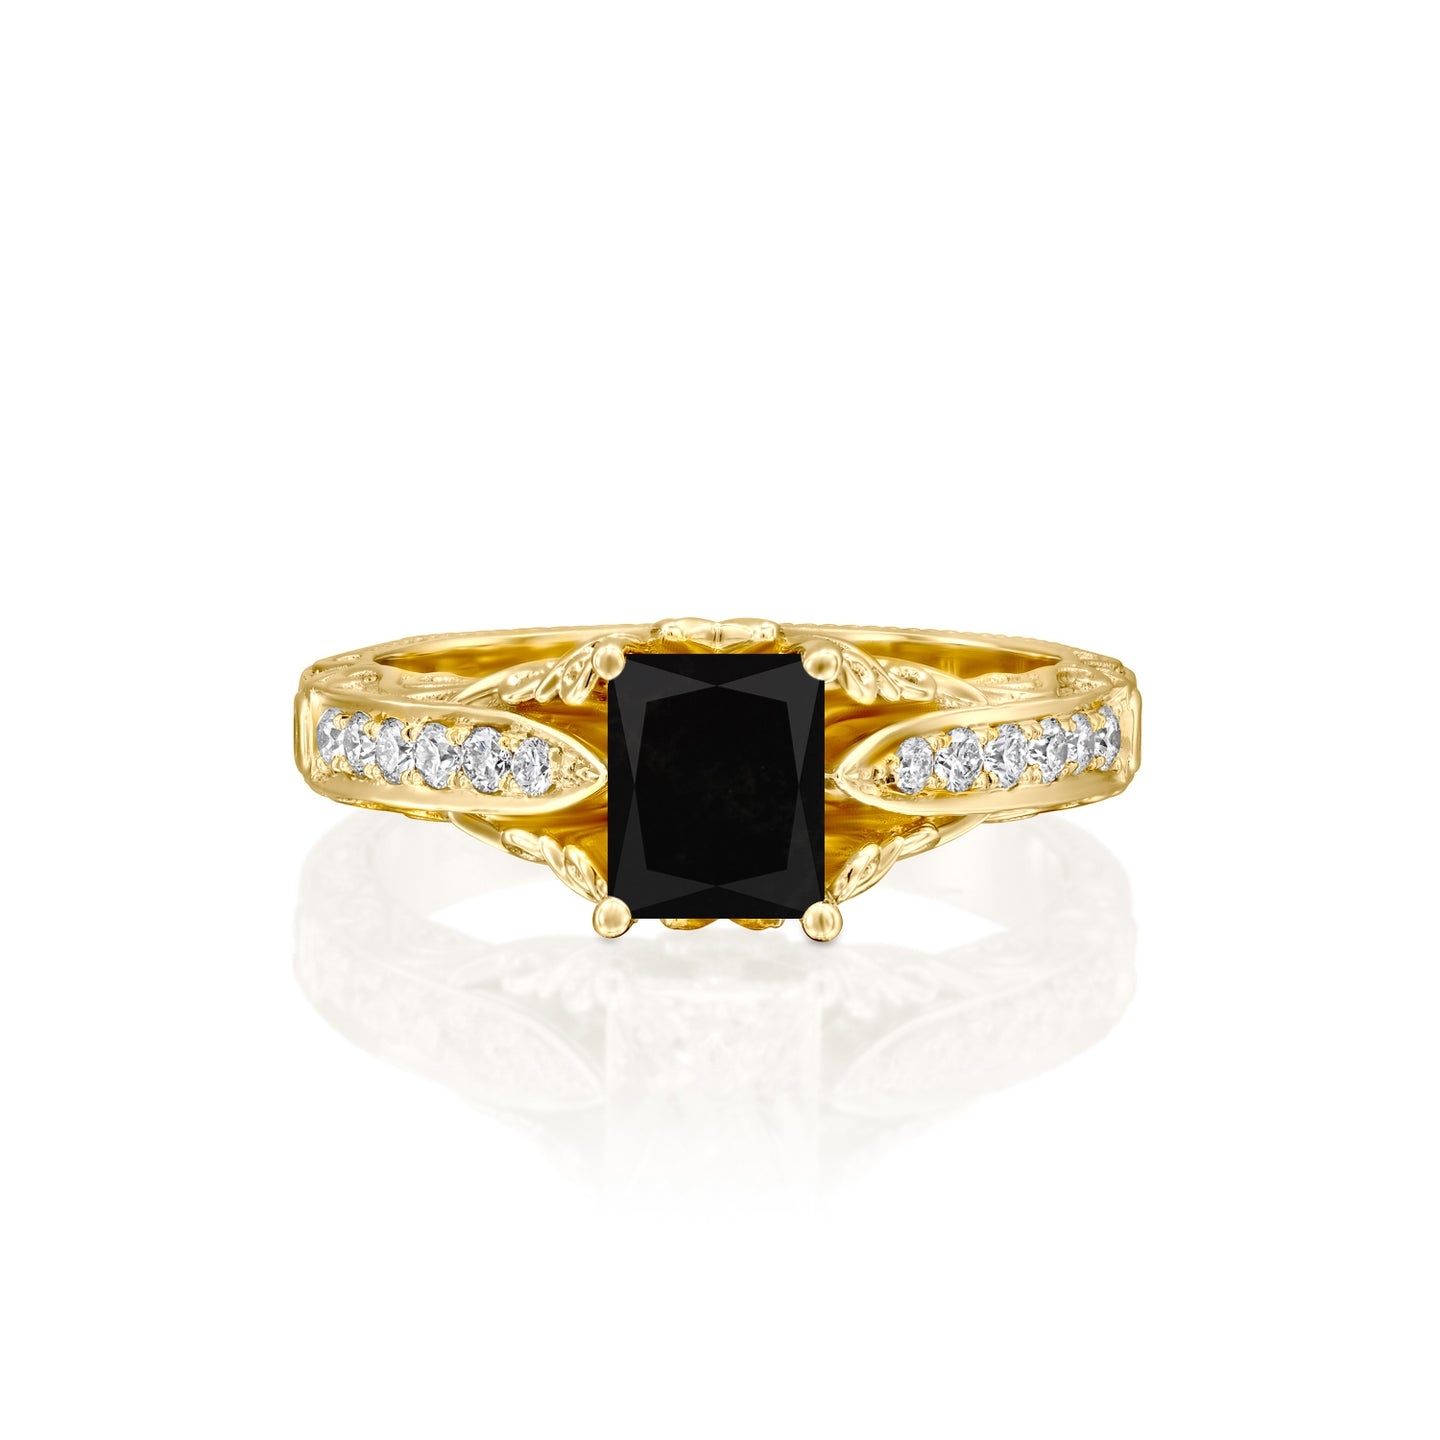 1.2 Carat 14K Yellow Gold Black Diamond